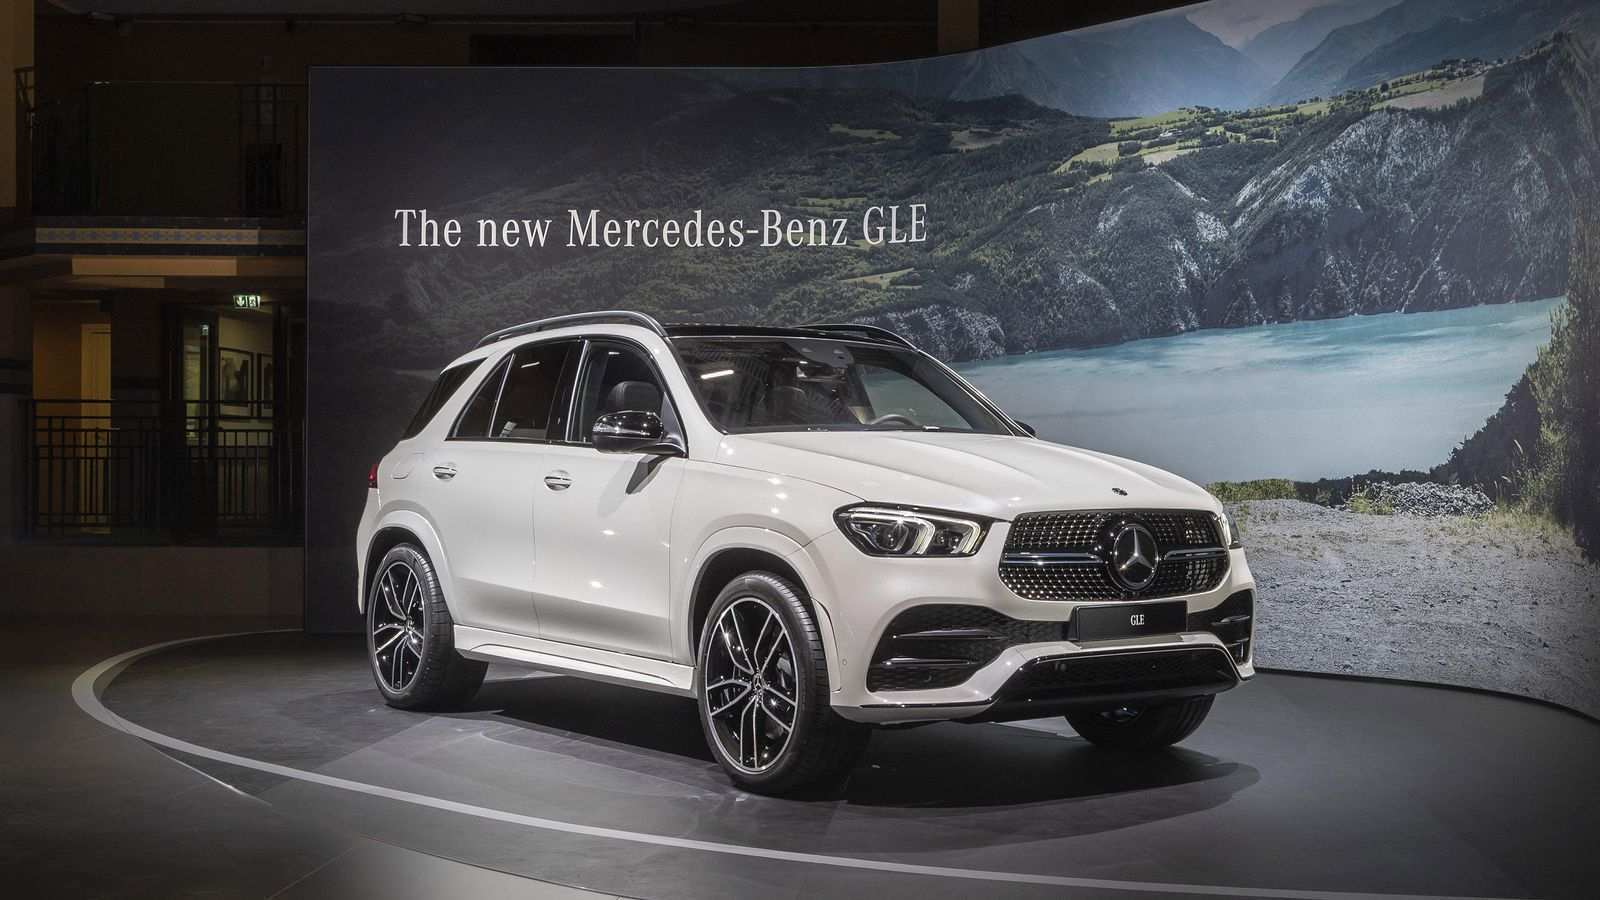 2020 Mercedes ML Class 400 Exterior and Interior